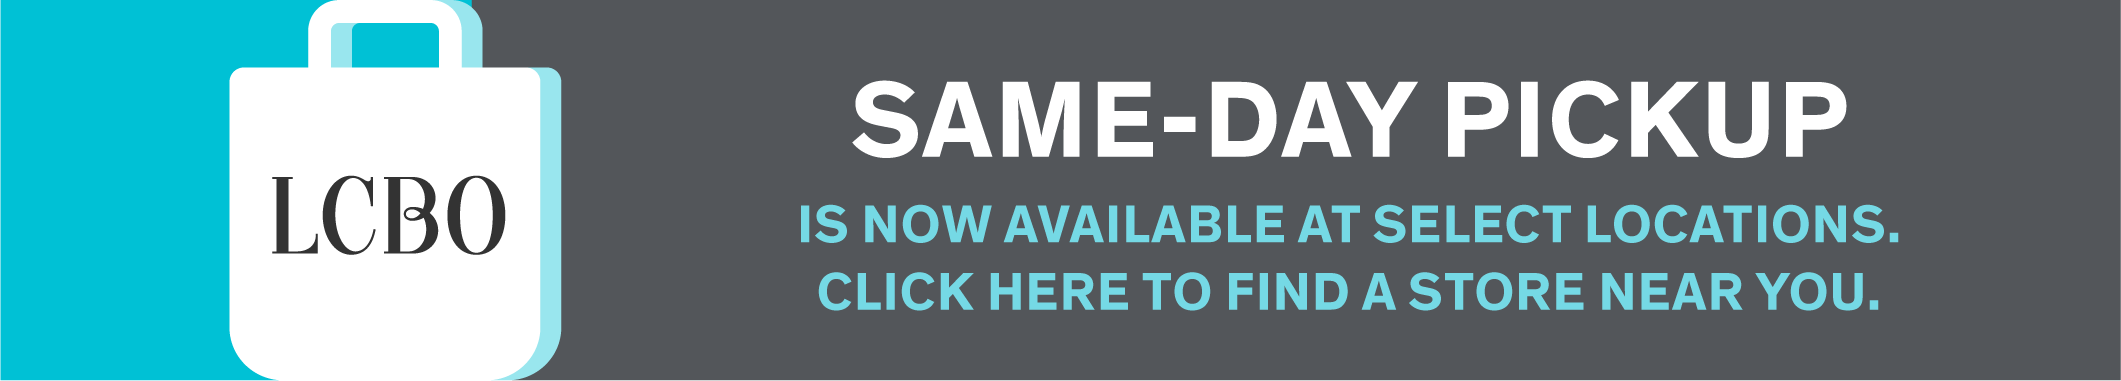 Same-Day Pickup is now available at select locations. Click here to find a store near you.